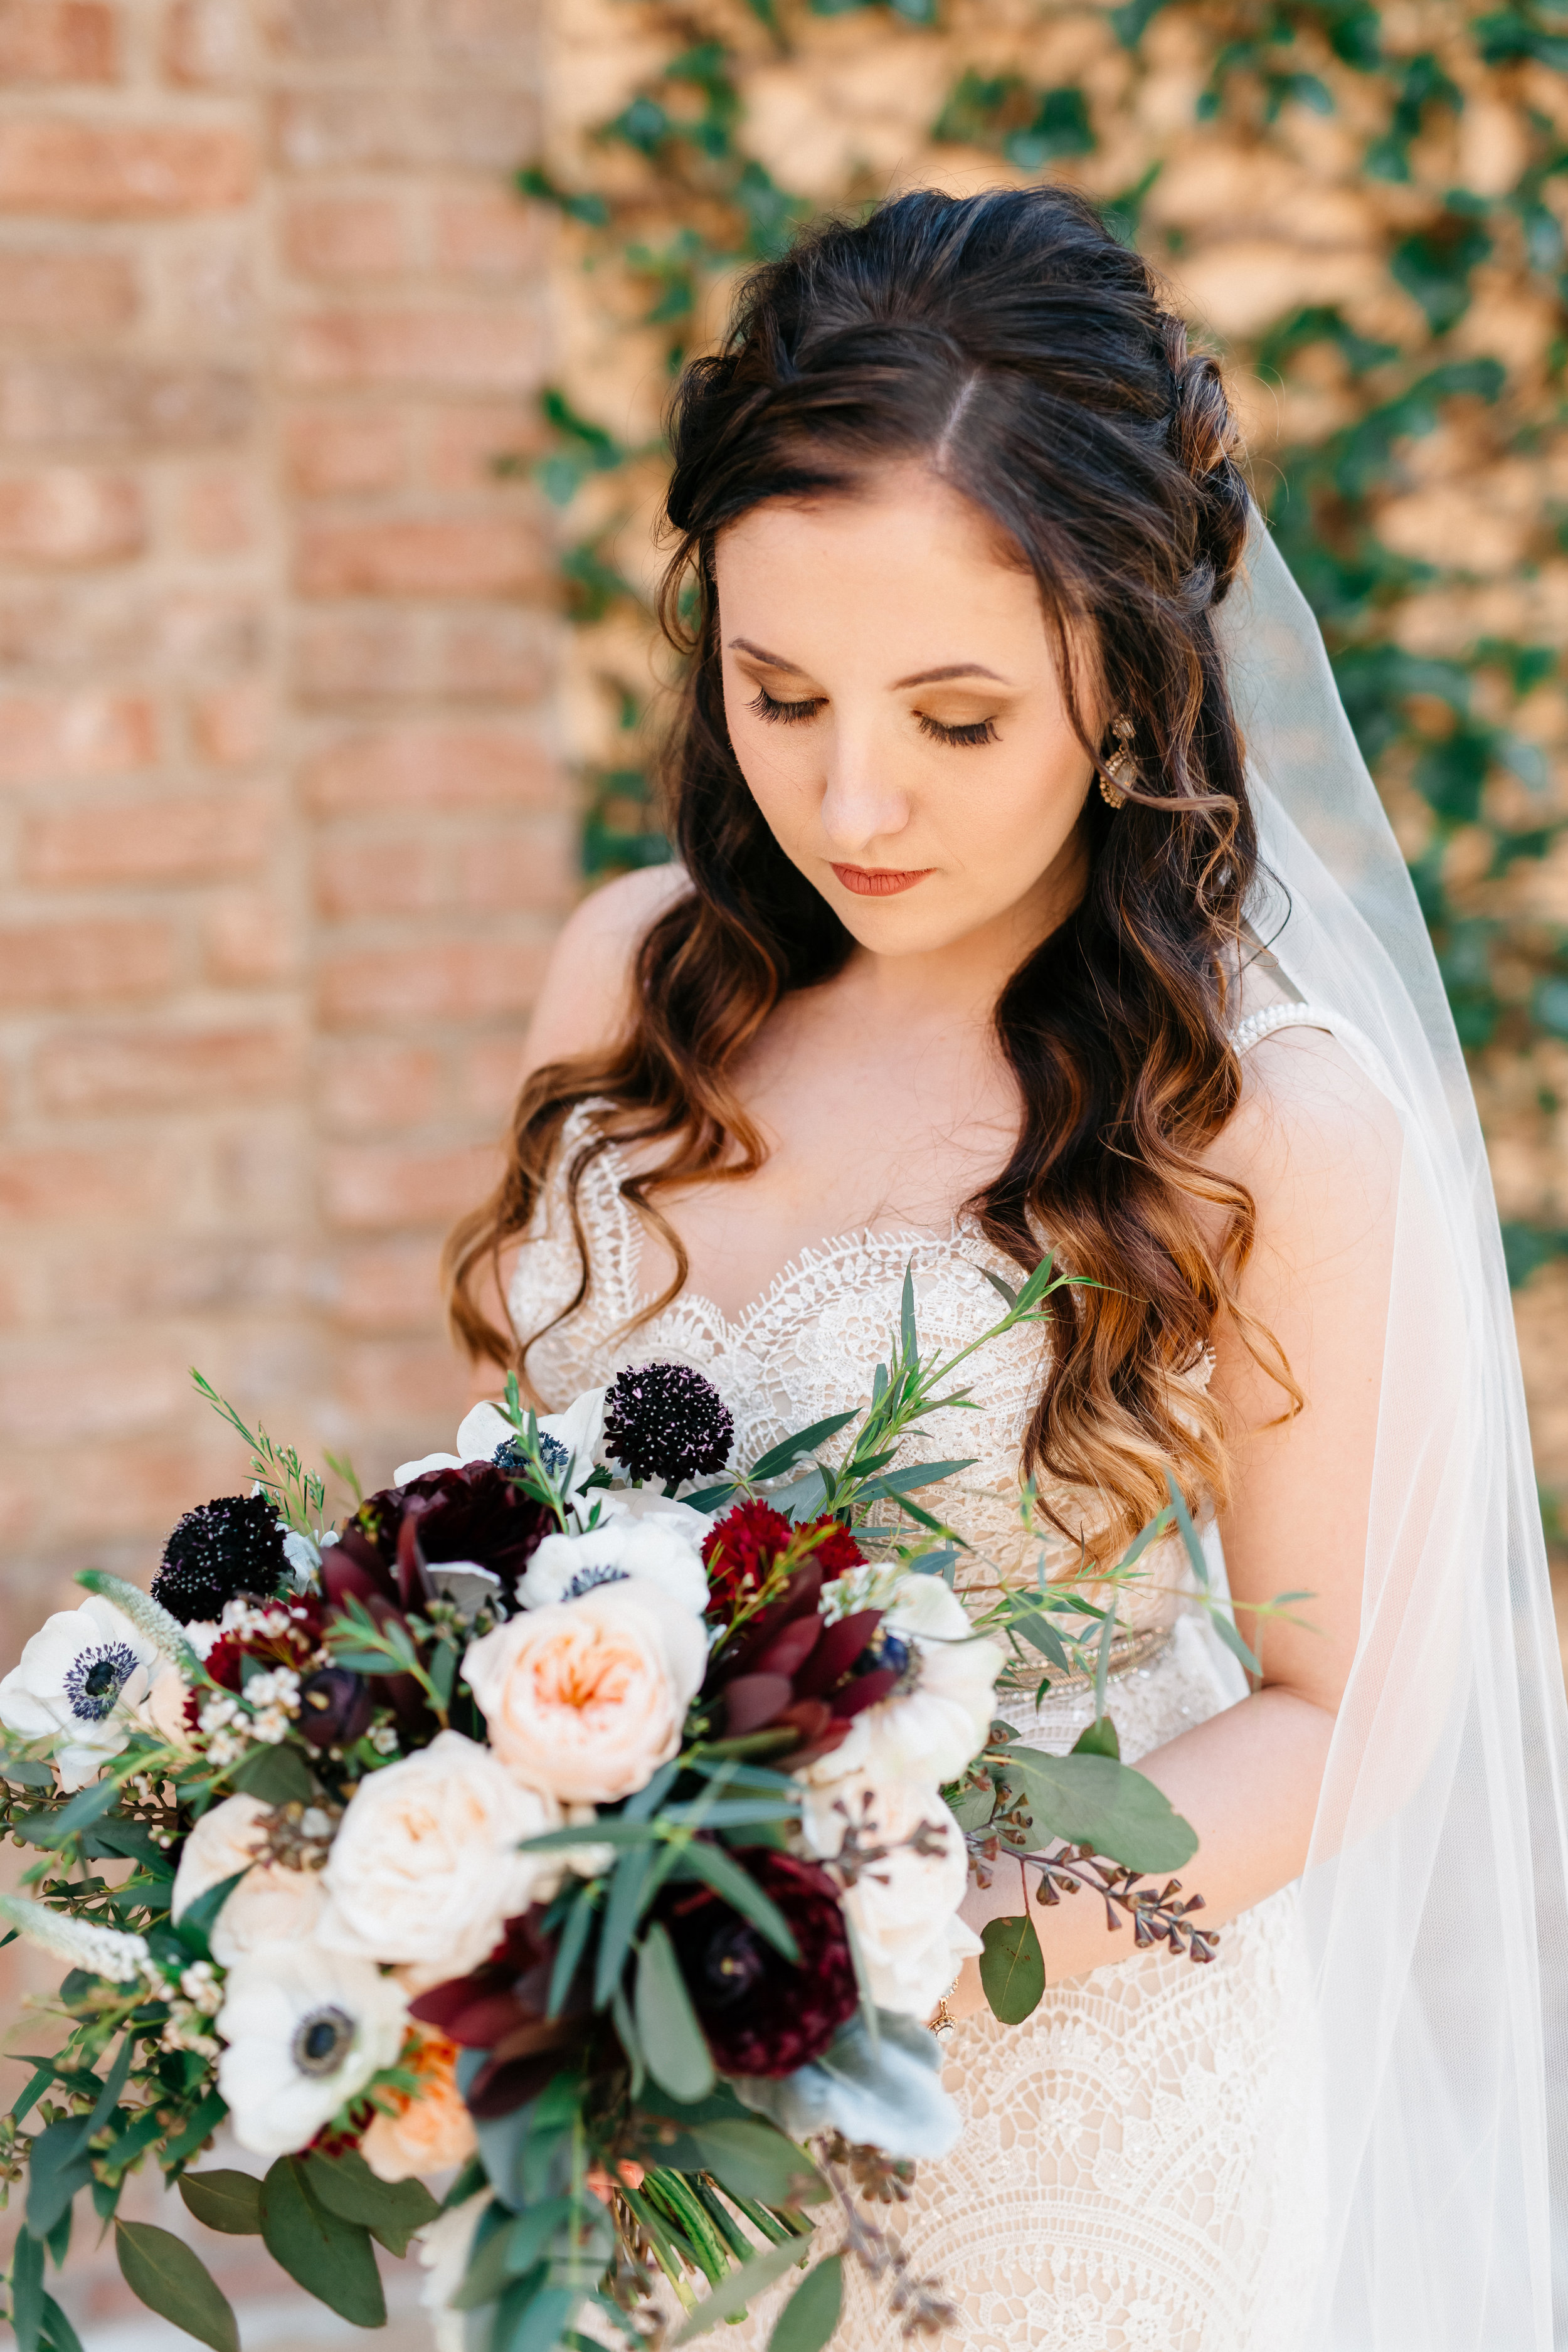 Bridal bouquet of anemones and blush peonies